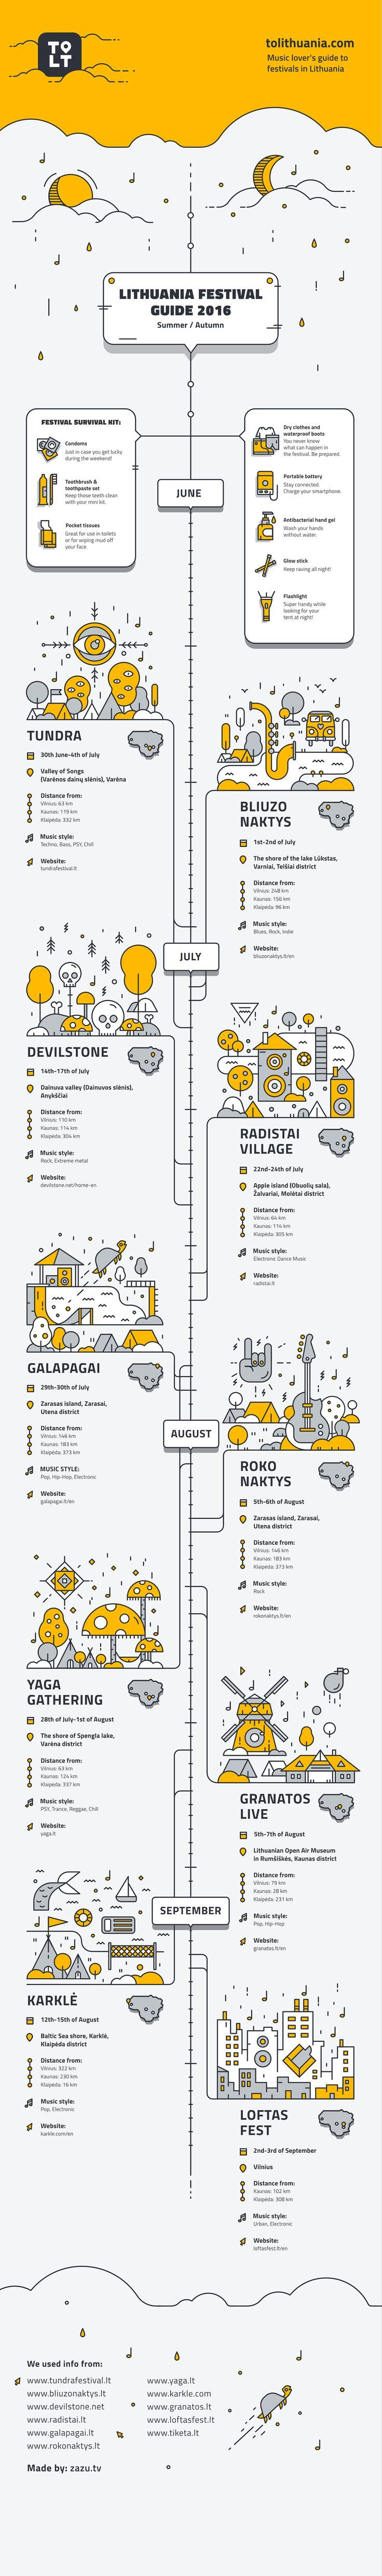 Lithuania Festival Guide on Behance: